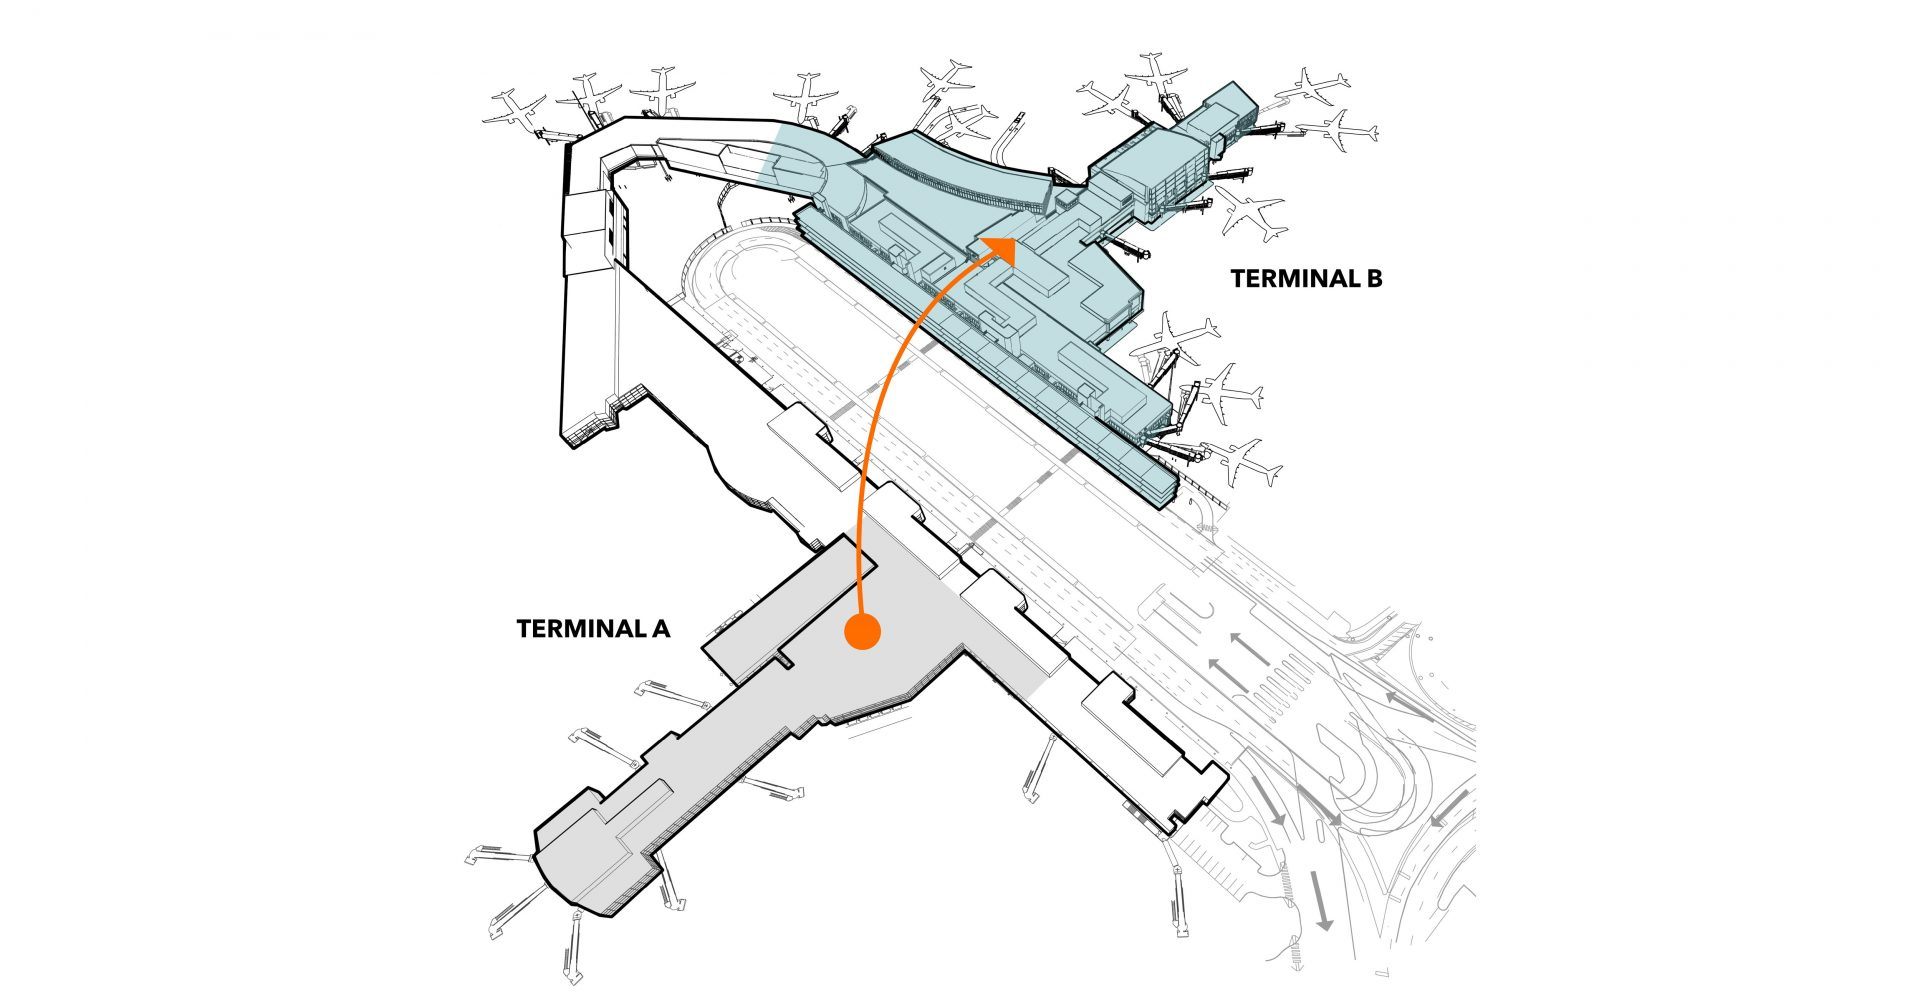 Diagram illustrating move of US Airways operations to American Airlines operations at Logan International Airport